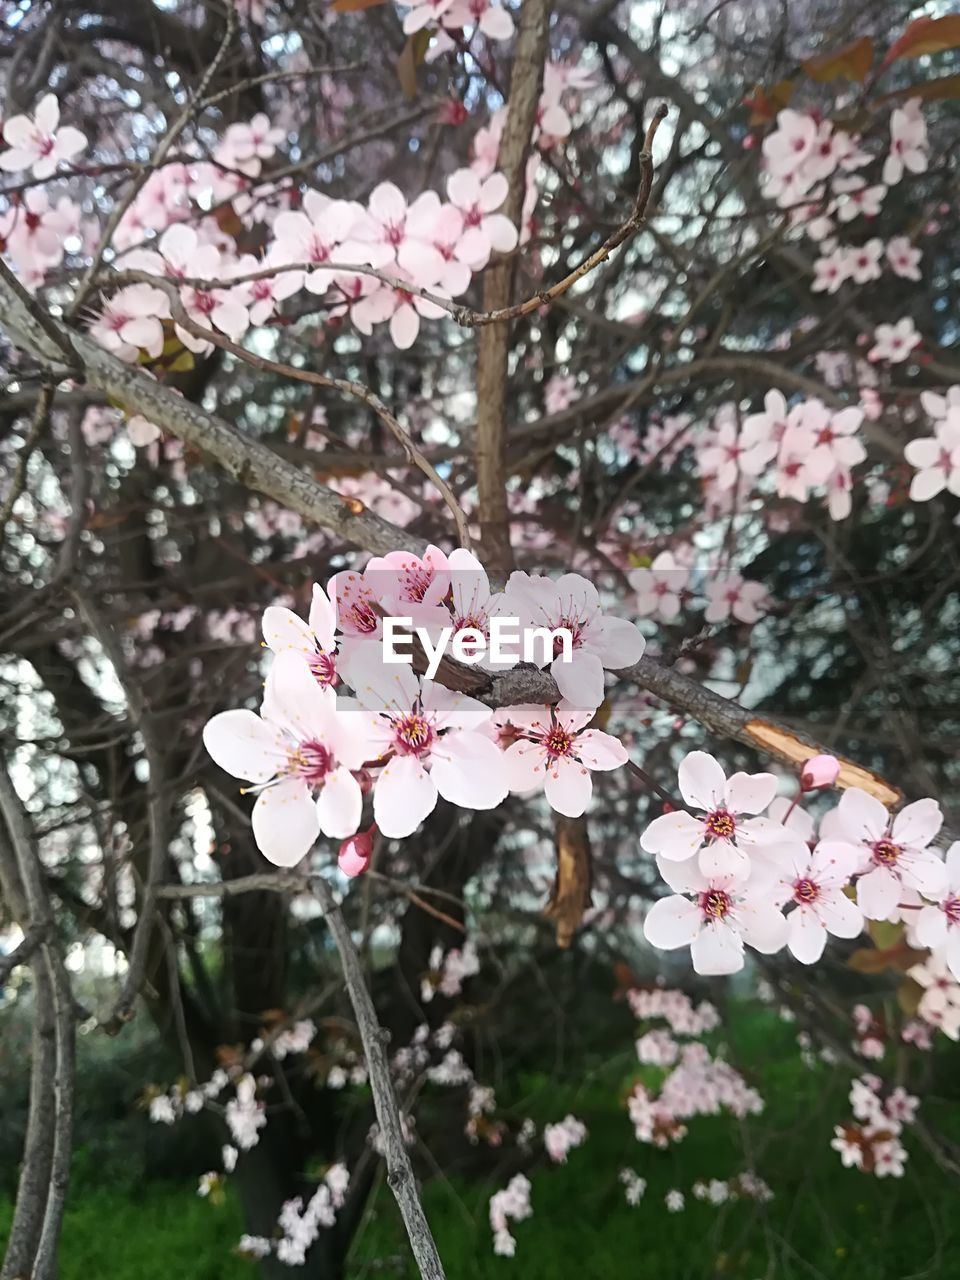 plant, freshness, flowering plant, fragility, vulnerability, flower, tree, beauty in nature, growth, pink color, petal, blossom, close-up, branch, day, cherry blossom, springtime, nature, inflorescence, focus on foreground, flower head, no people, cherry tree, outdoors, pollen, spring